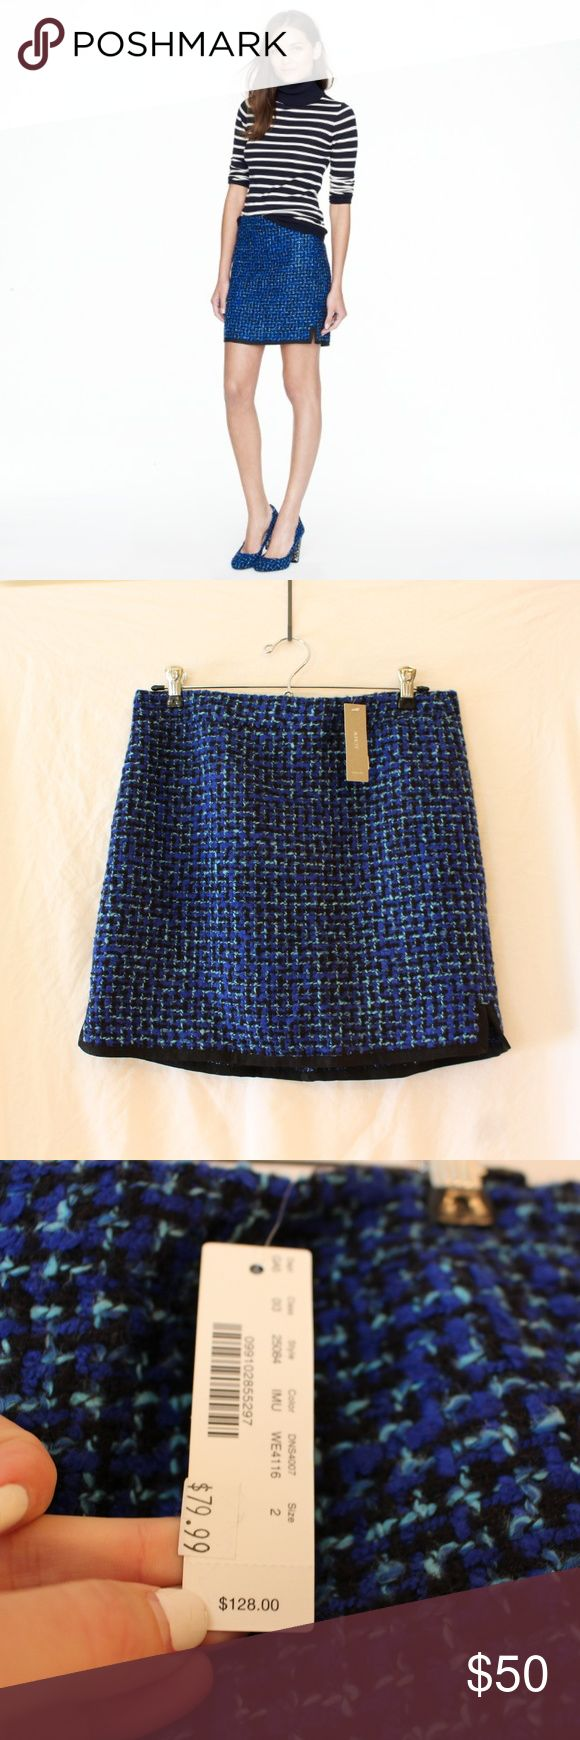 """J Crew Postage stamp mini in indigo tweed NWT ❤️ The matching blazer is also available! ❤️ We love an abbreviated silhouette but went to great lengths to tweak this mini's hem so you'll never feel overexposed. Crafted in a subtle A-line shape to hang off the hip, it's absolutely of the moment in an indigo tweed that makes your entire wardrobe pop.  Acrylic/poly/wool/cotton. Sits above waist. Back zip. 16 1/2"""" long. Lined. Dry clean. Import. JCrew Skirts Mini"""